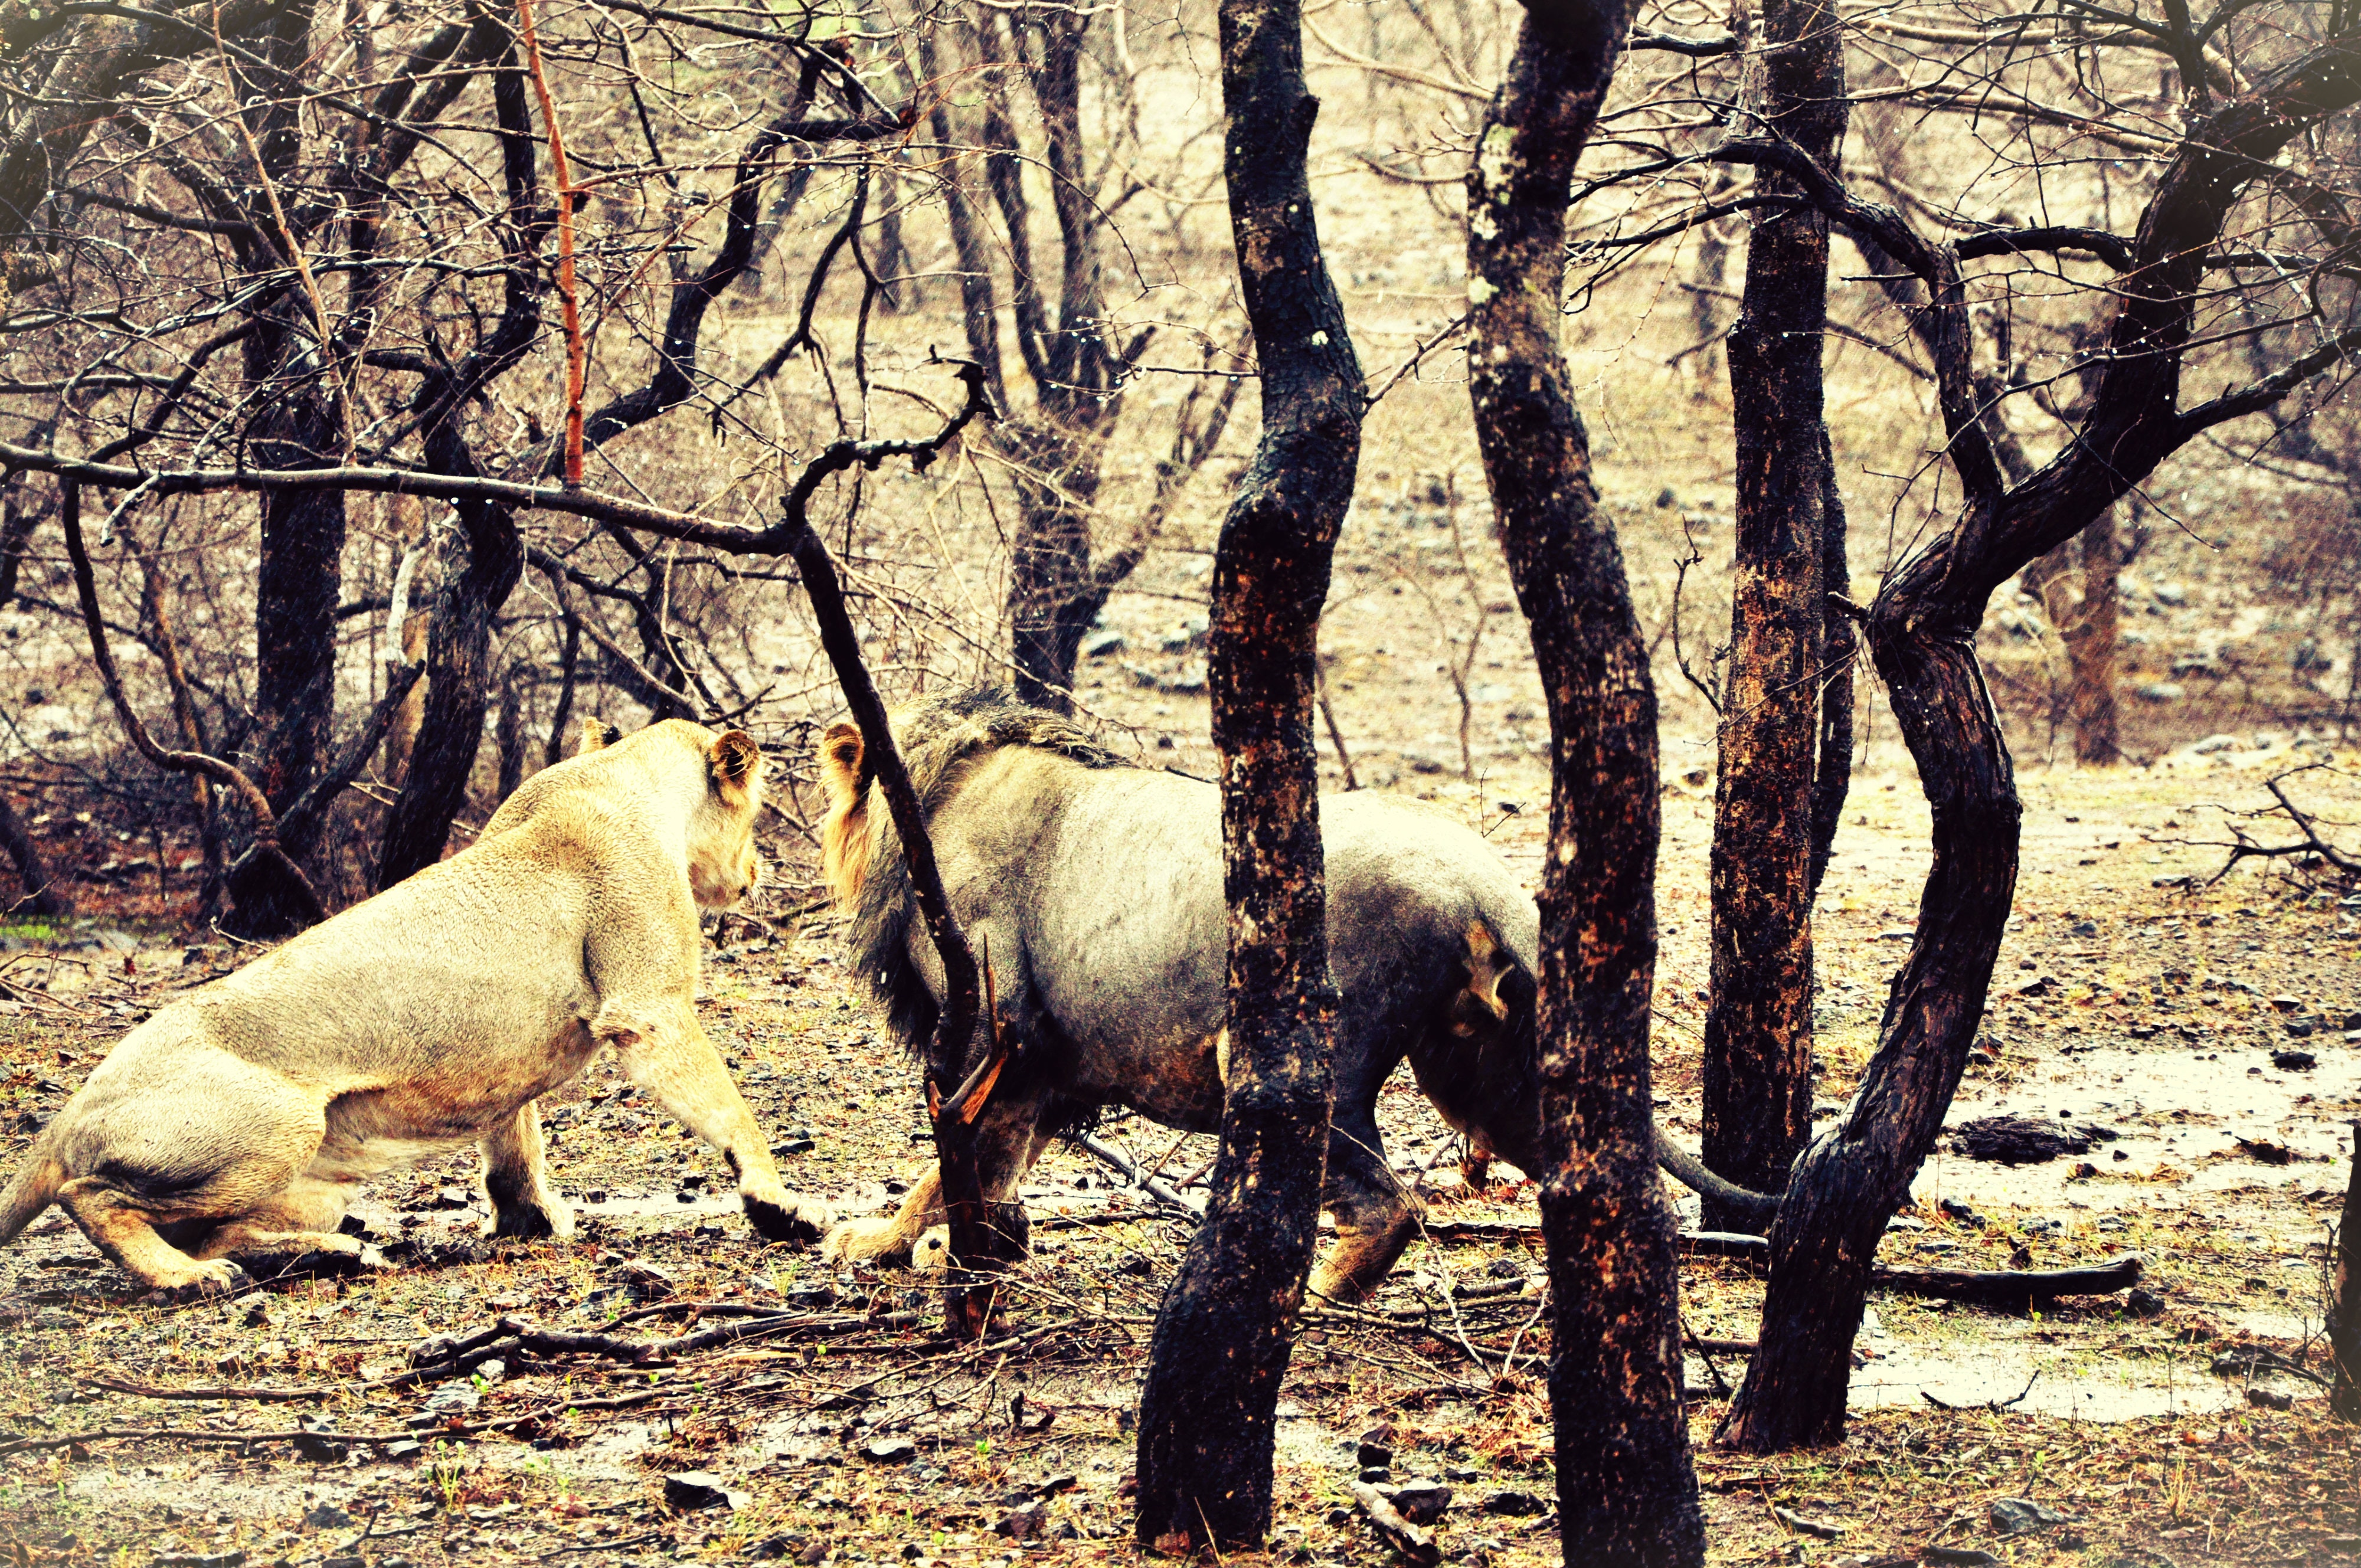 Herd of Bare Tree in Forest, Safari, Season, Park, Outdoors, HQ Photo